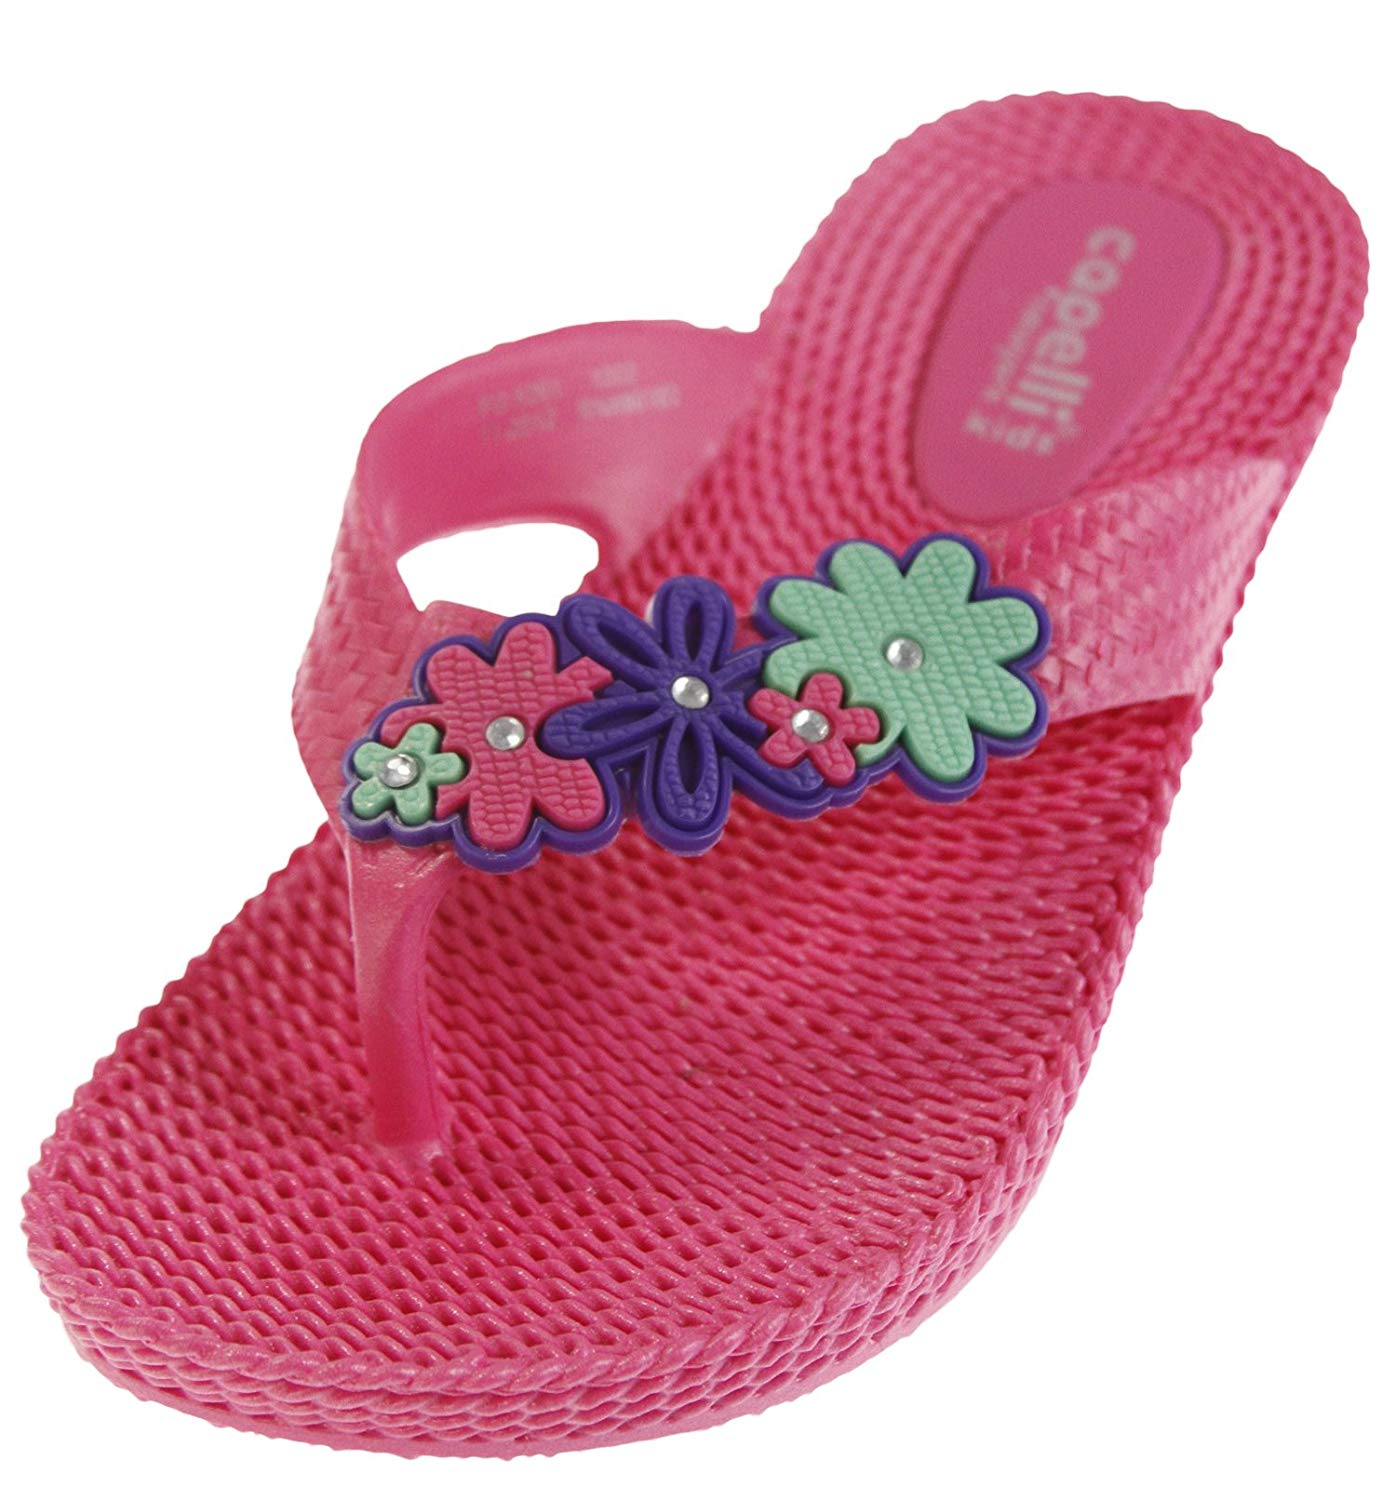 1fa7b22111 Buy Capelli New York Ladies Woven Flip Flop with Lace Flower in ...